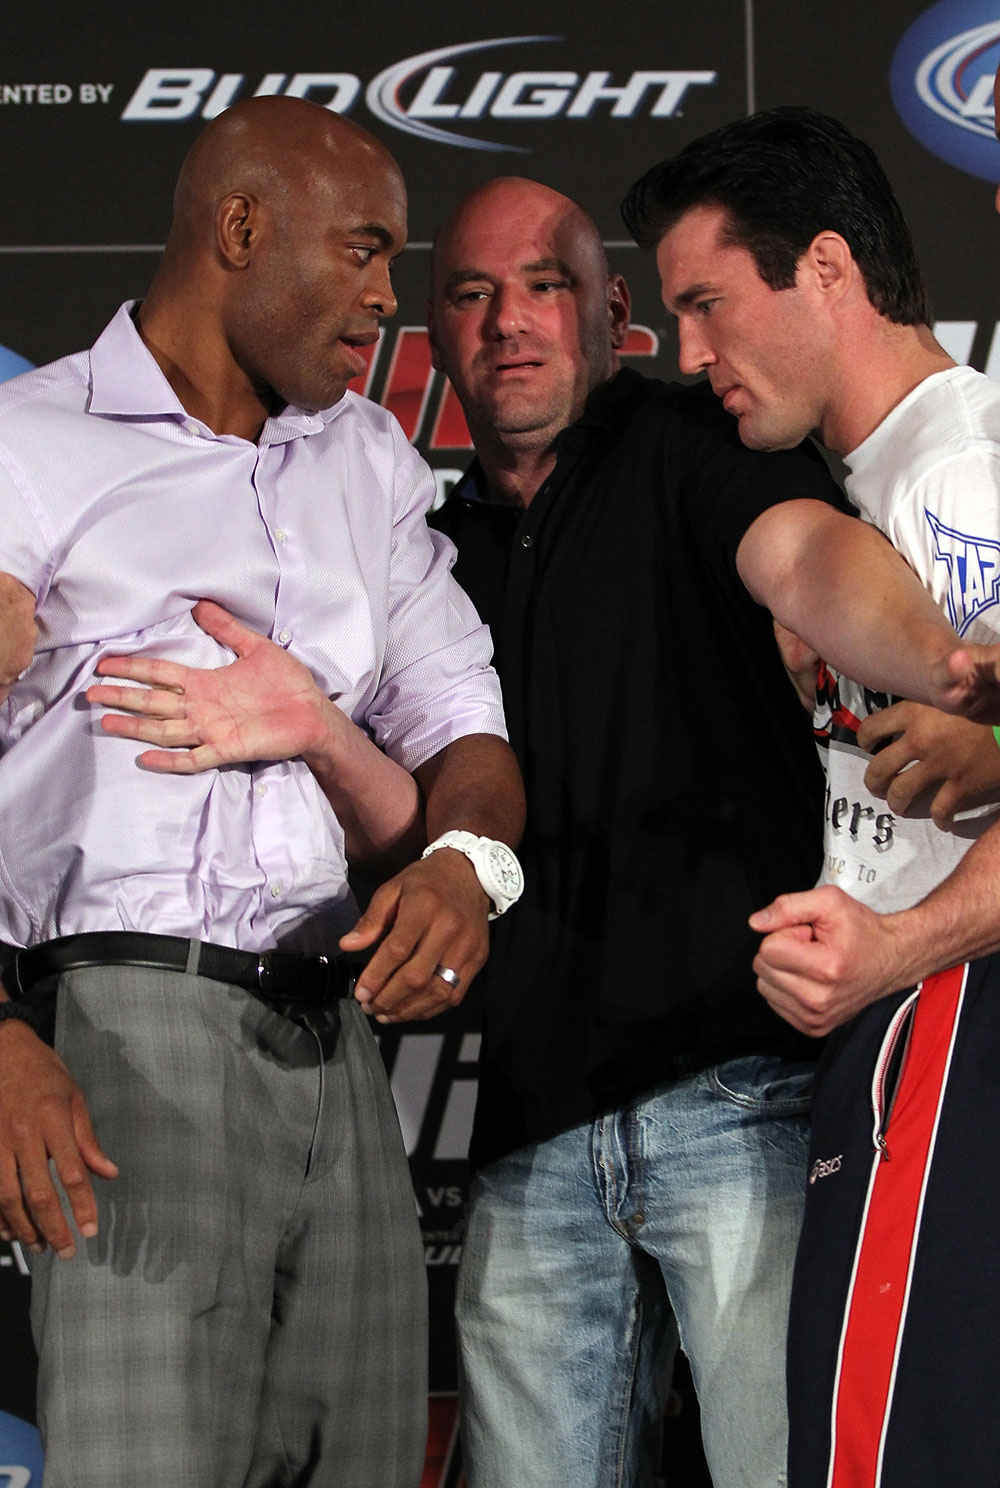 LAS VEGAS, NV - JULY 3:   (L-R) Opponents Anderson Silva and Chael Sonnen are separated by UFC President Dana White during the UFC 148 press conference at Lagasse&#39;s Stadium inside The Palazzo on July 3, 2012 in Las Vegas, Nevada.  (Photo by Josh Hedges/Zuffa LLC/Zuffa LLC via Getty Images)